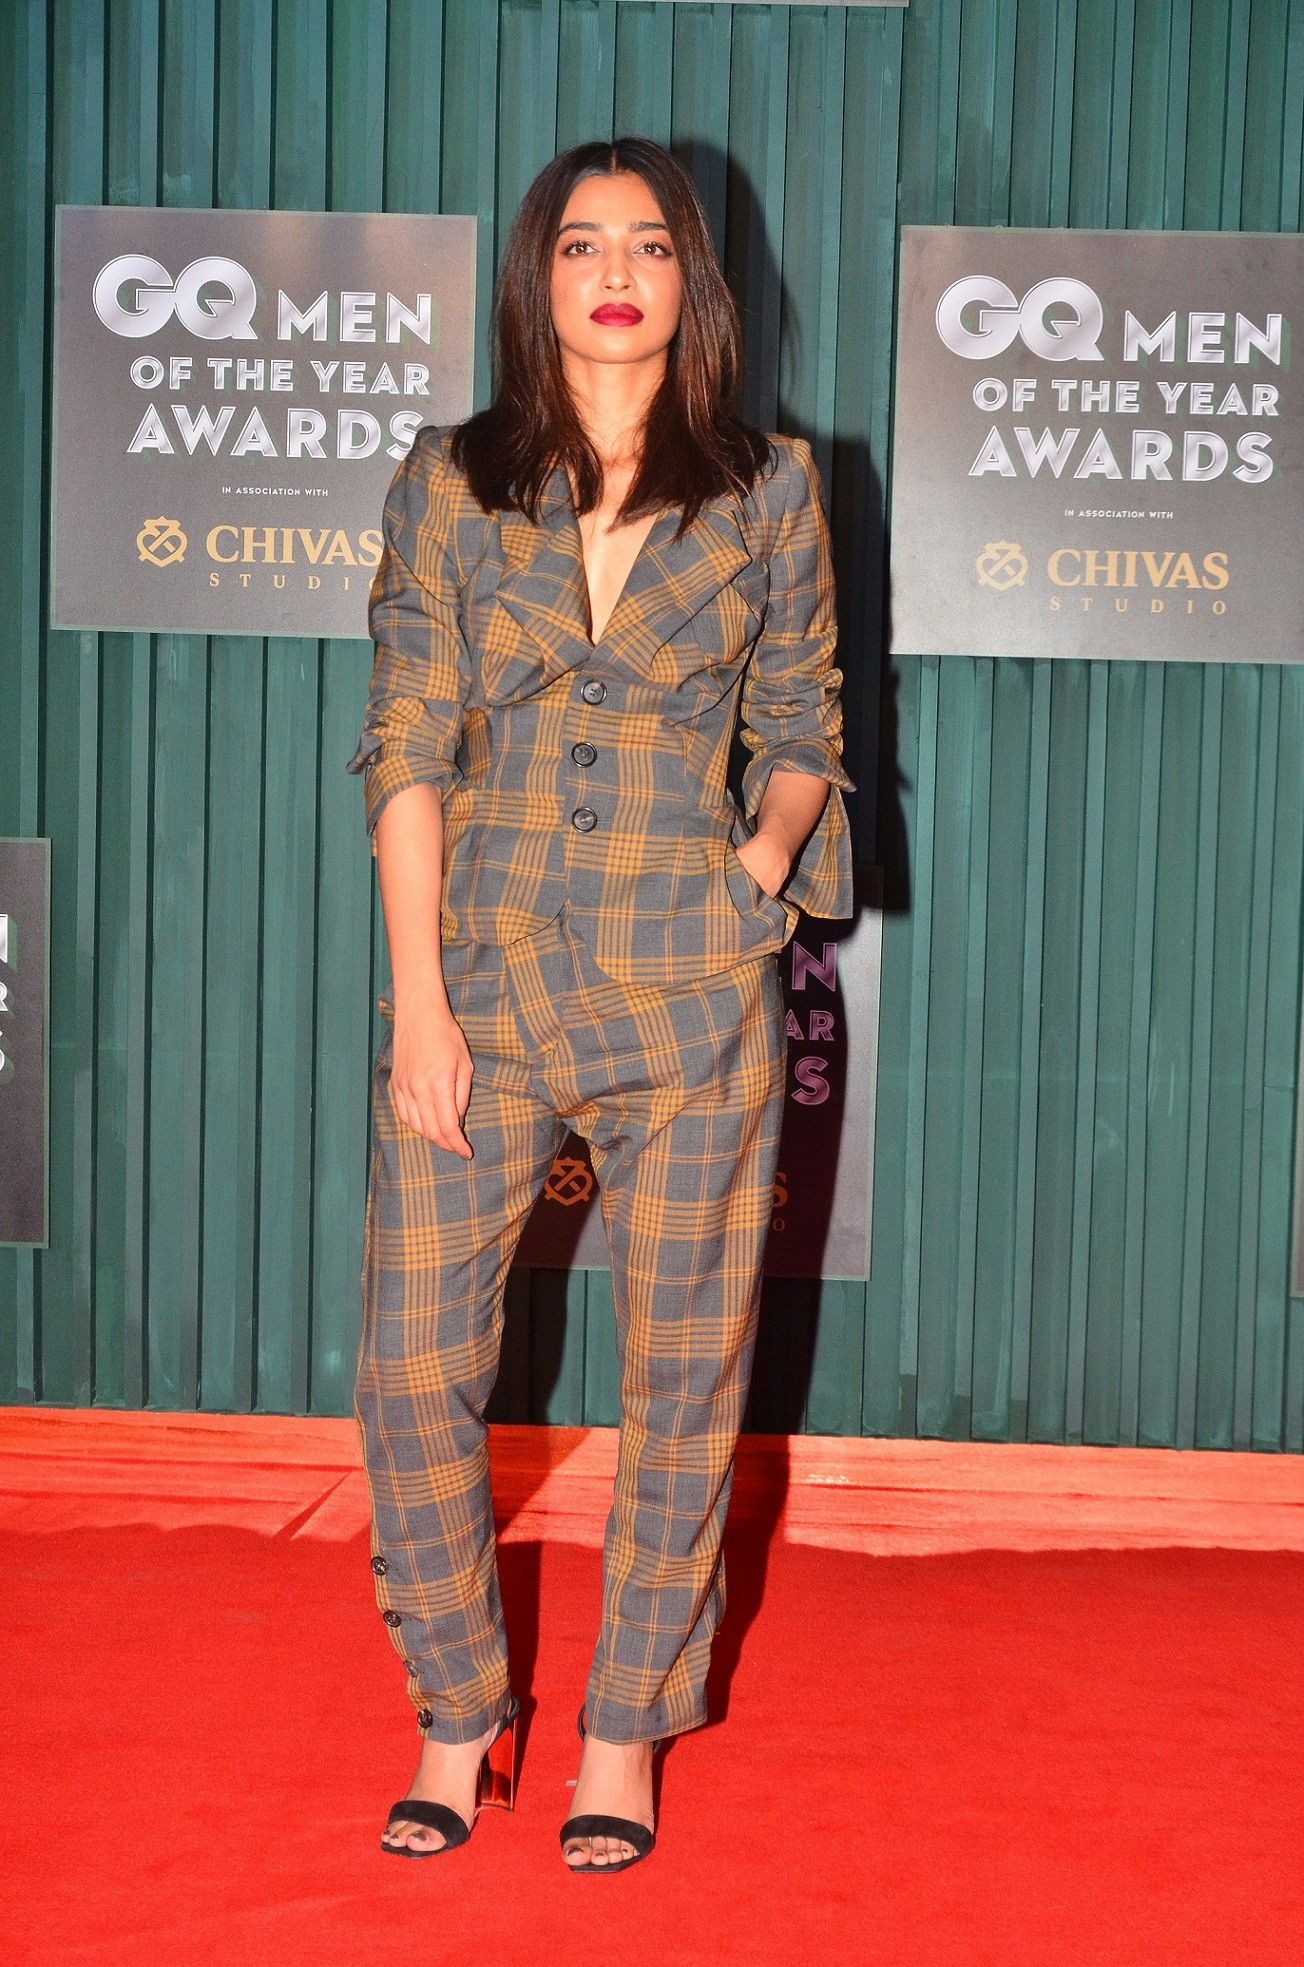 Winner - Woman of the Year, Radhika Apte at the GQ Men of The Year Awards 2018